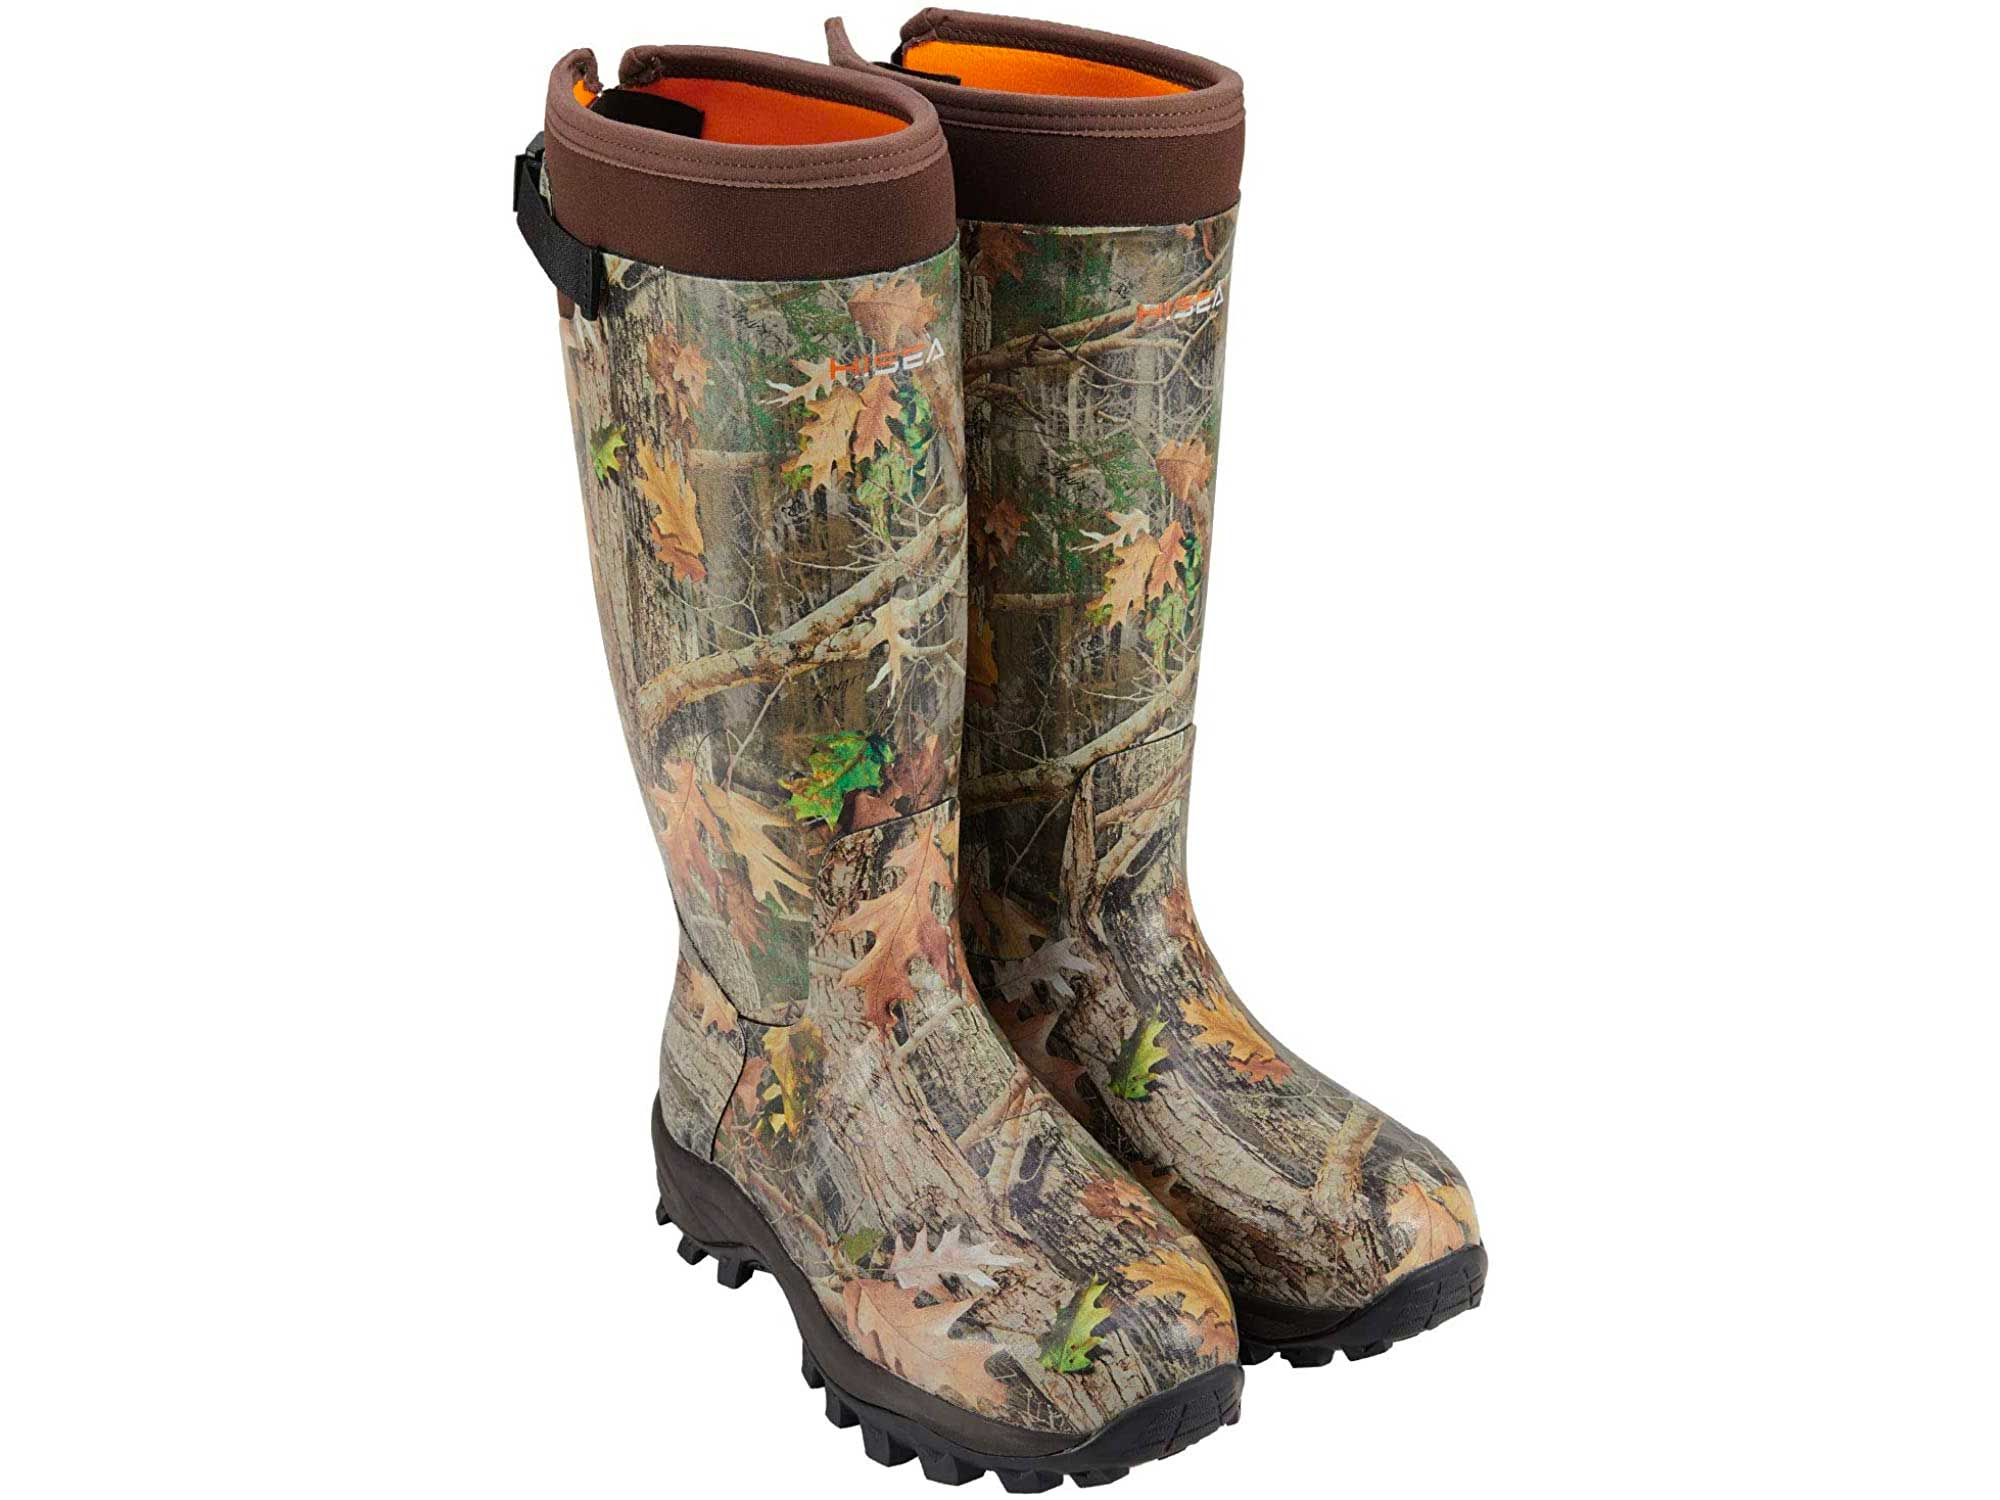 HISEA Apollo Basic Hunting Boots for Men Waterproof Insulated Rubber Boots Rain Boots Neoprene Mens Boots